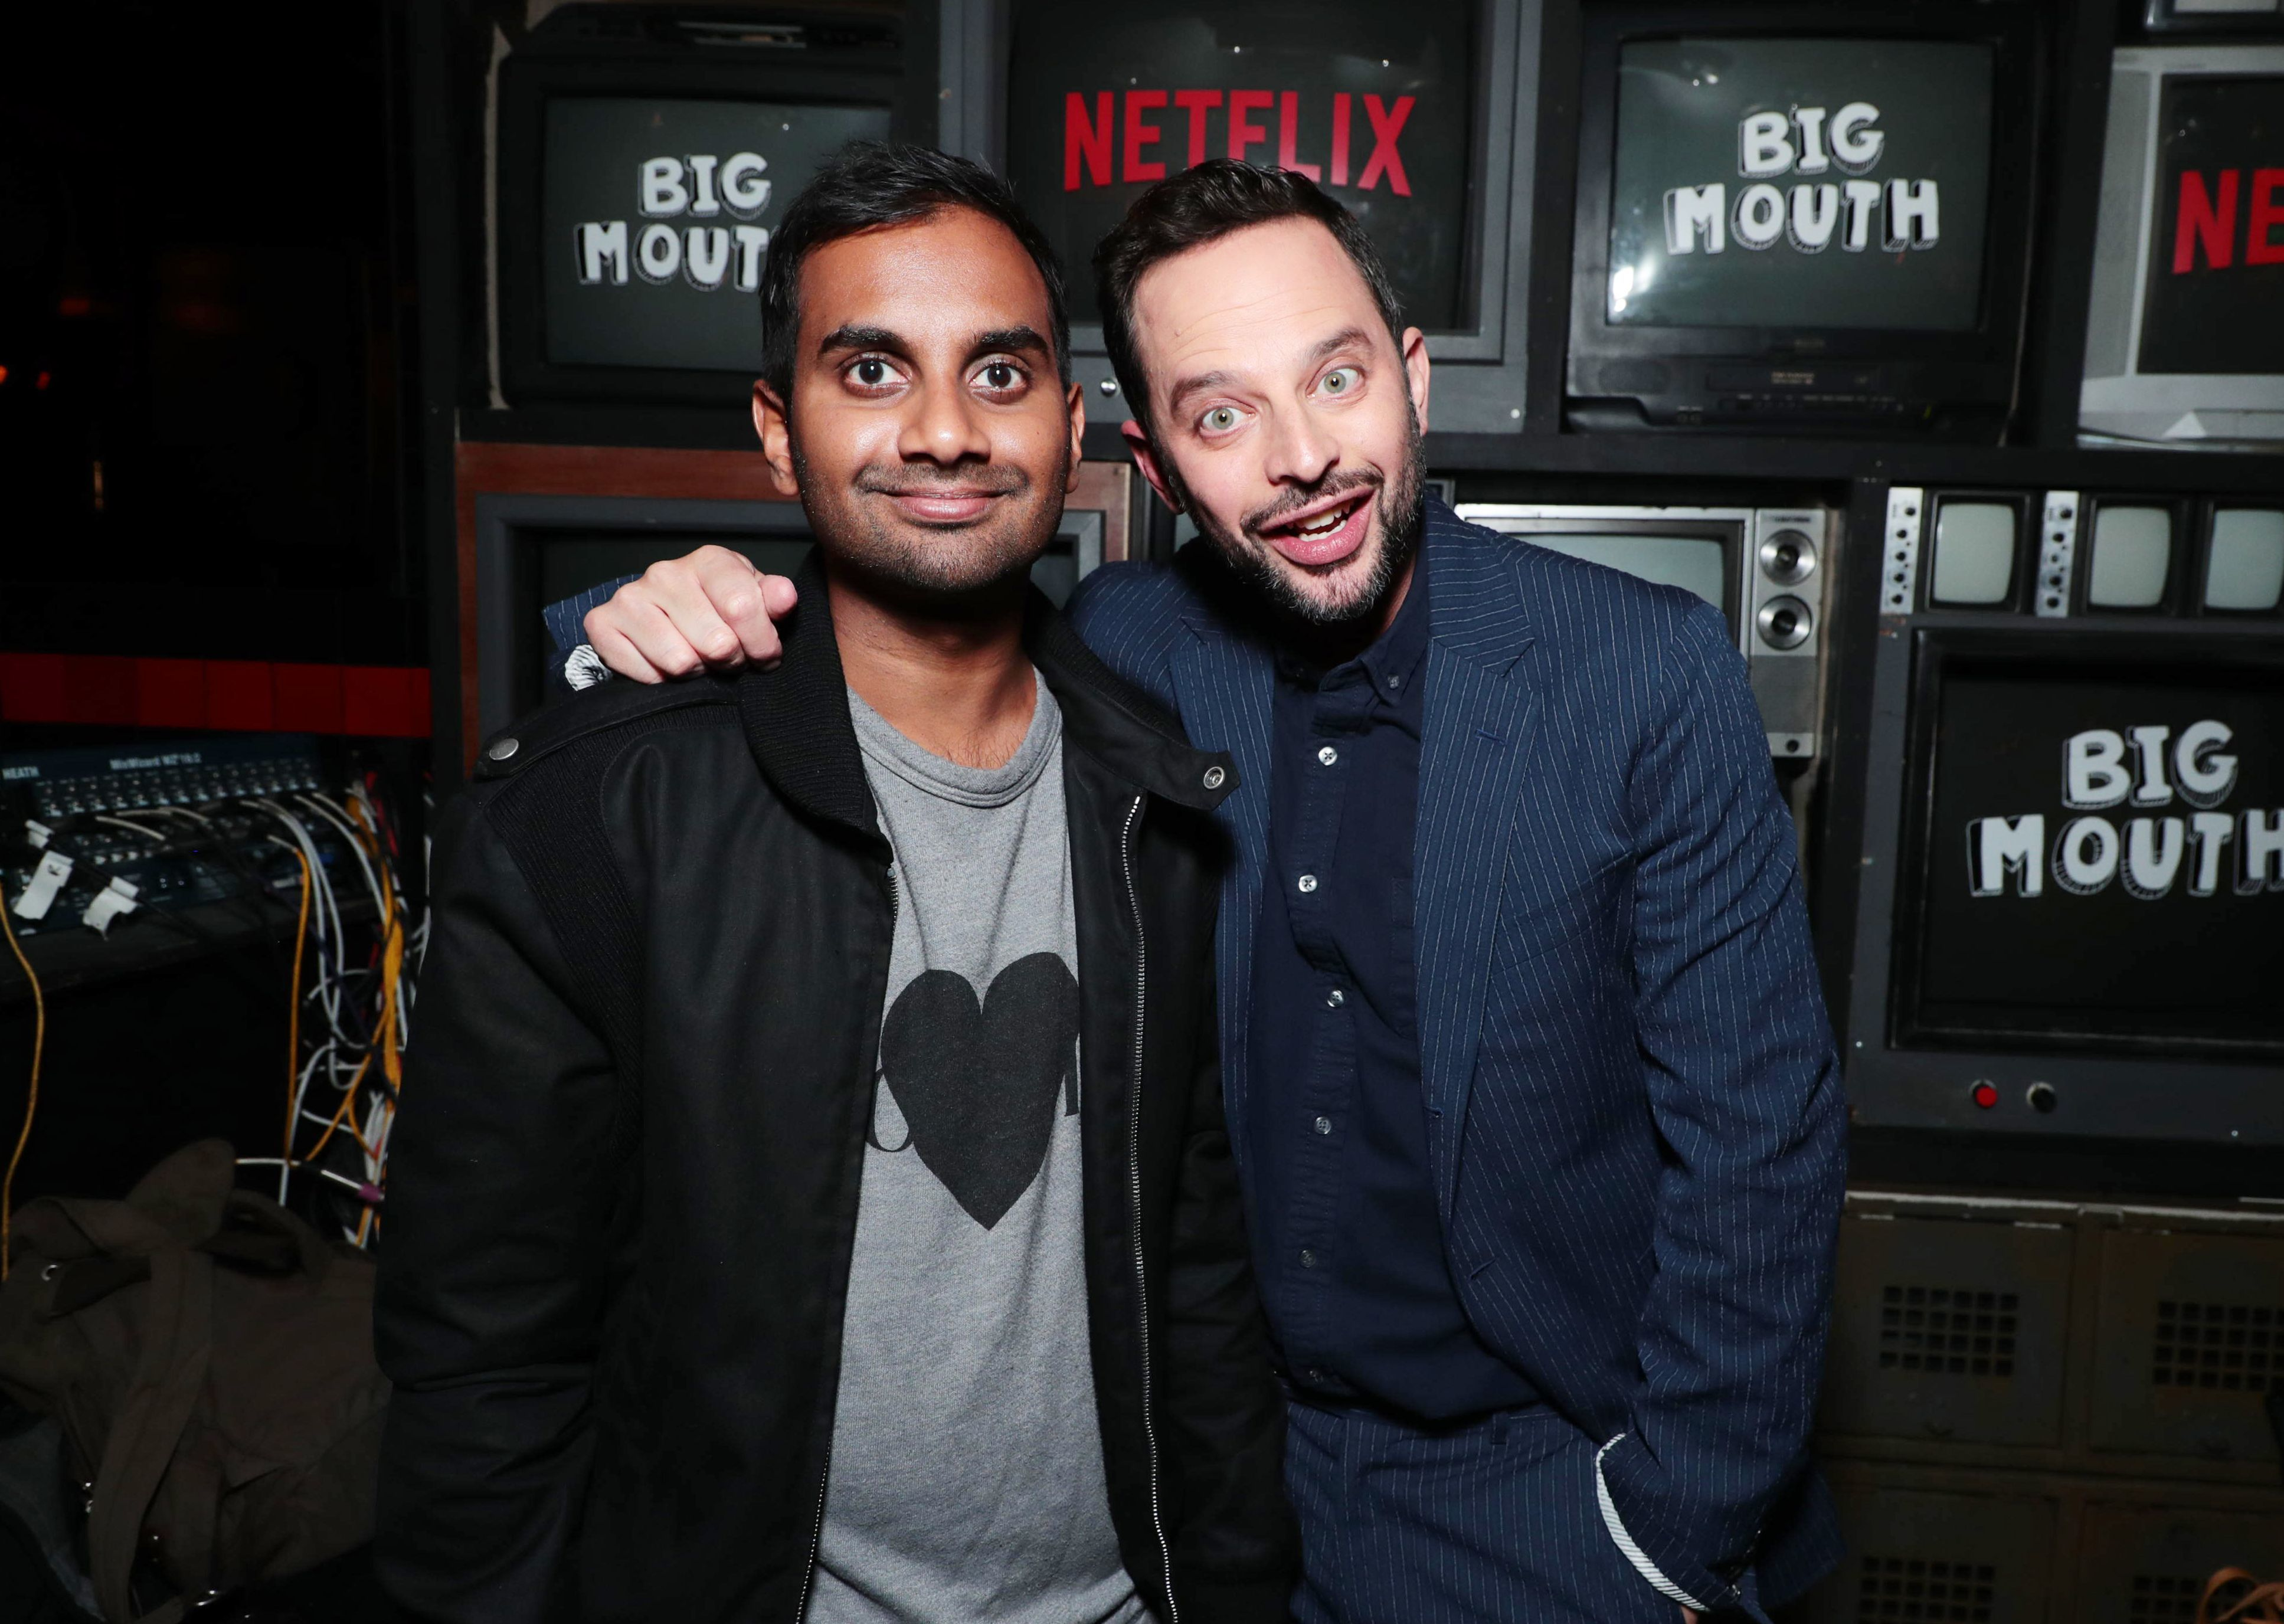 """Aziz Ansari and Nick Kroll attend the Netflix """"Big Mouth"""" premiere screening and party in Los Angeles on Sept. 20, 2017."""